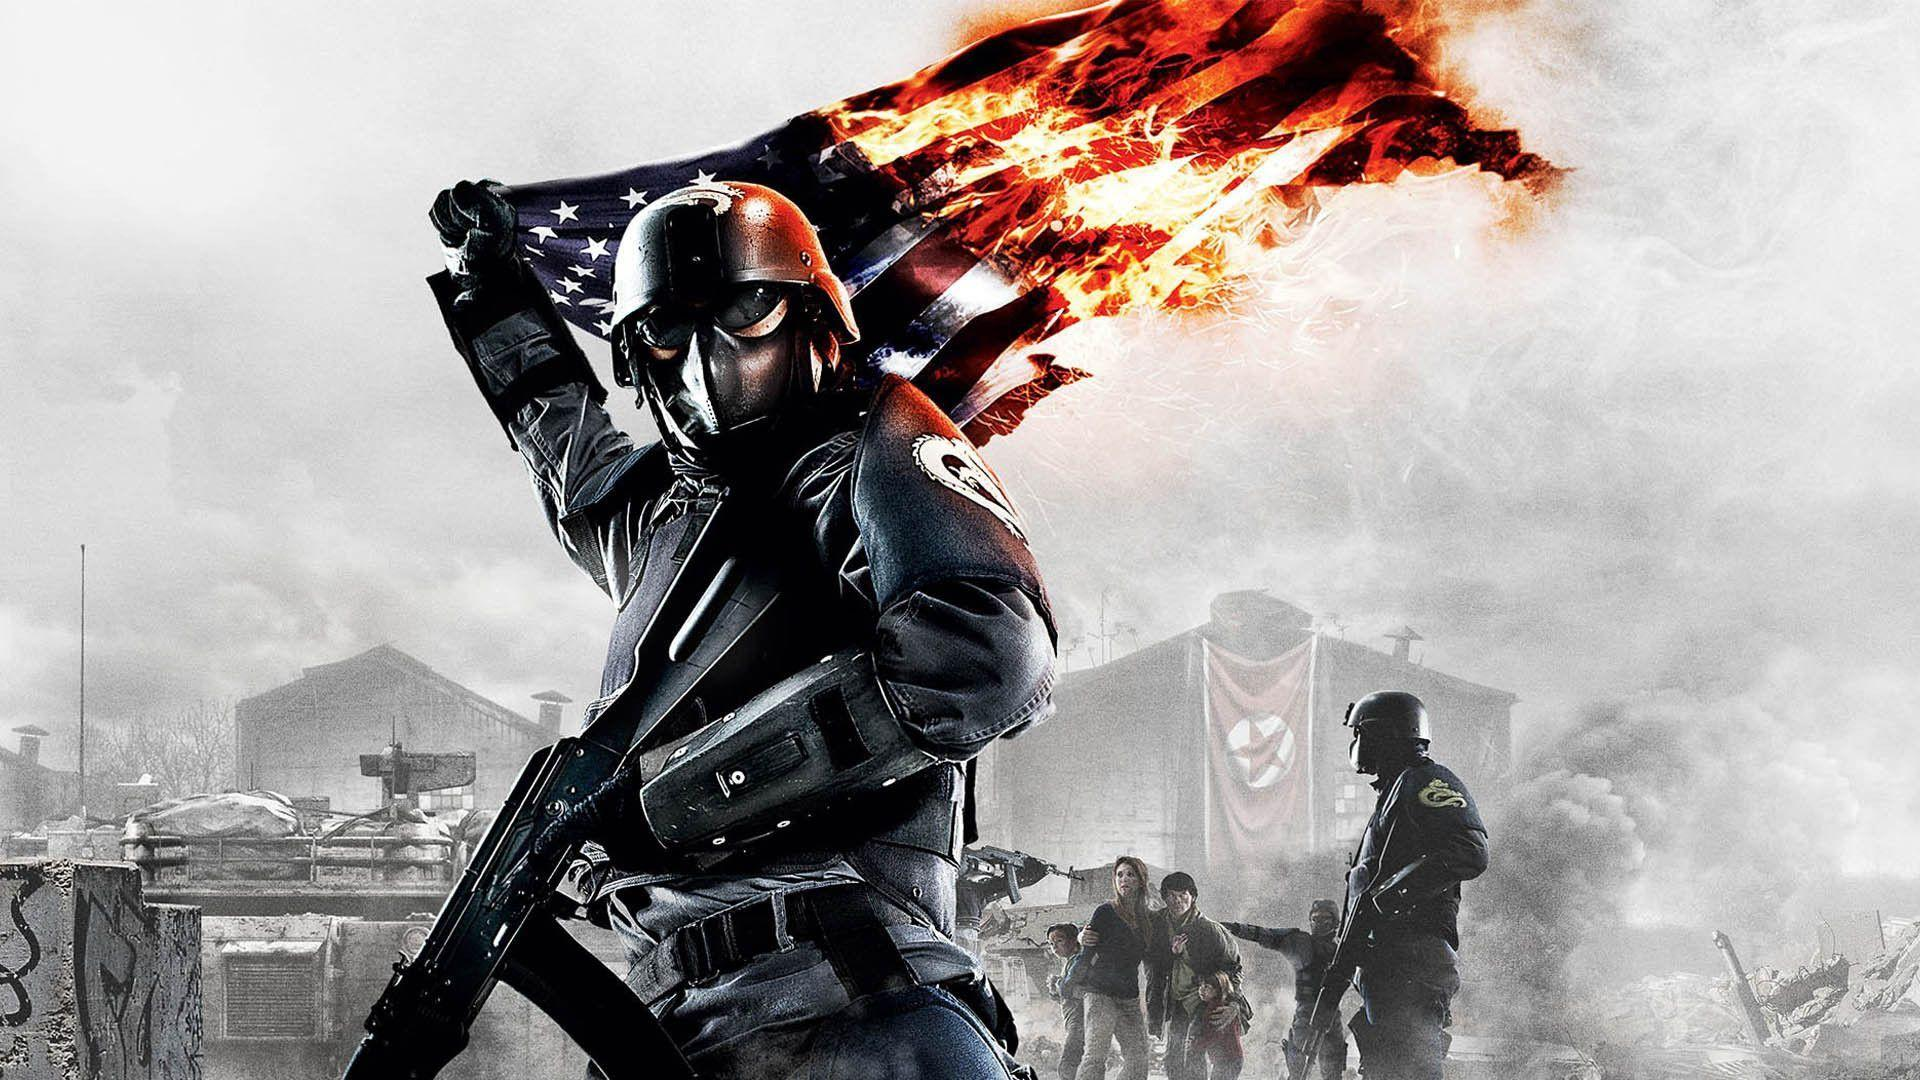 Champıons High Resolution Wallpapers Gaming: Homefront Wallpapers